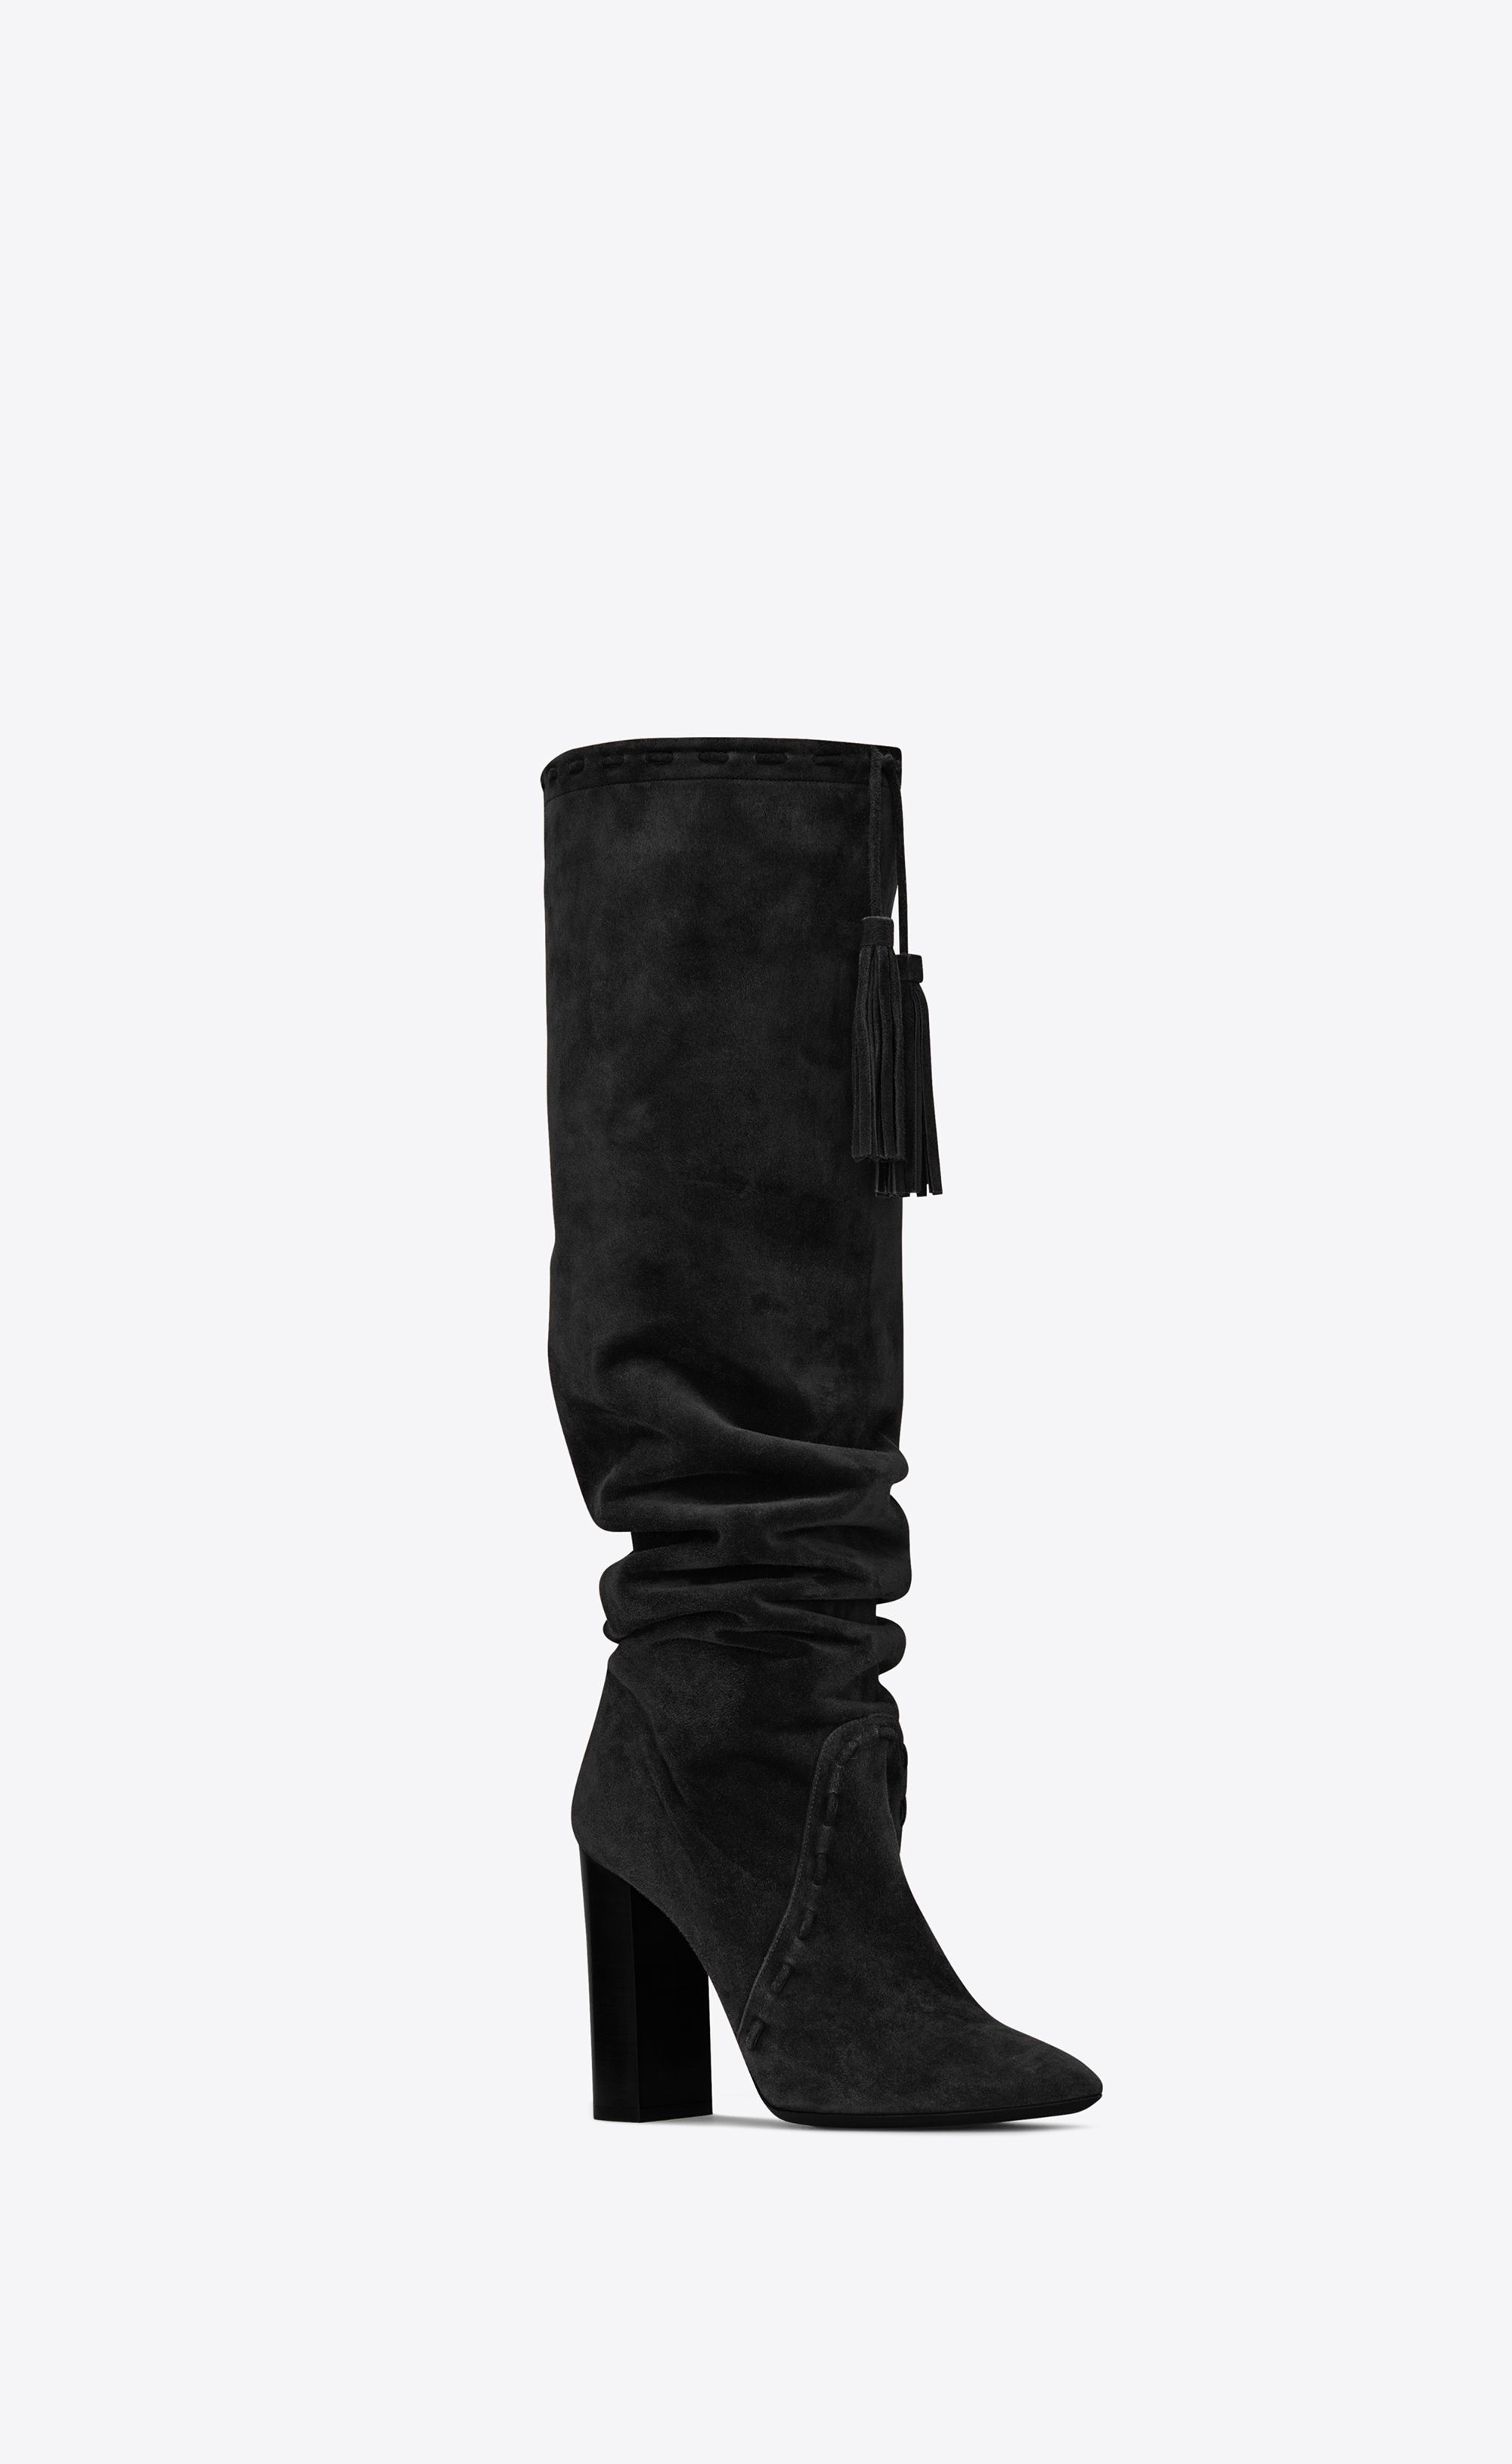 37ac5ed8bbf1 Saint Laurent - Meurice tasseled boot in black suede ( 1